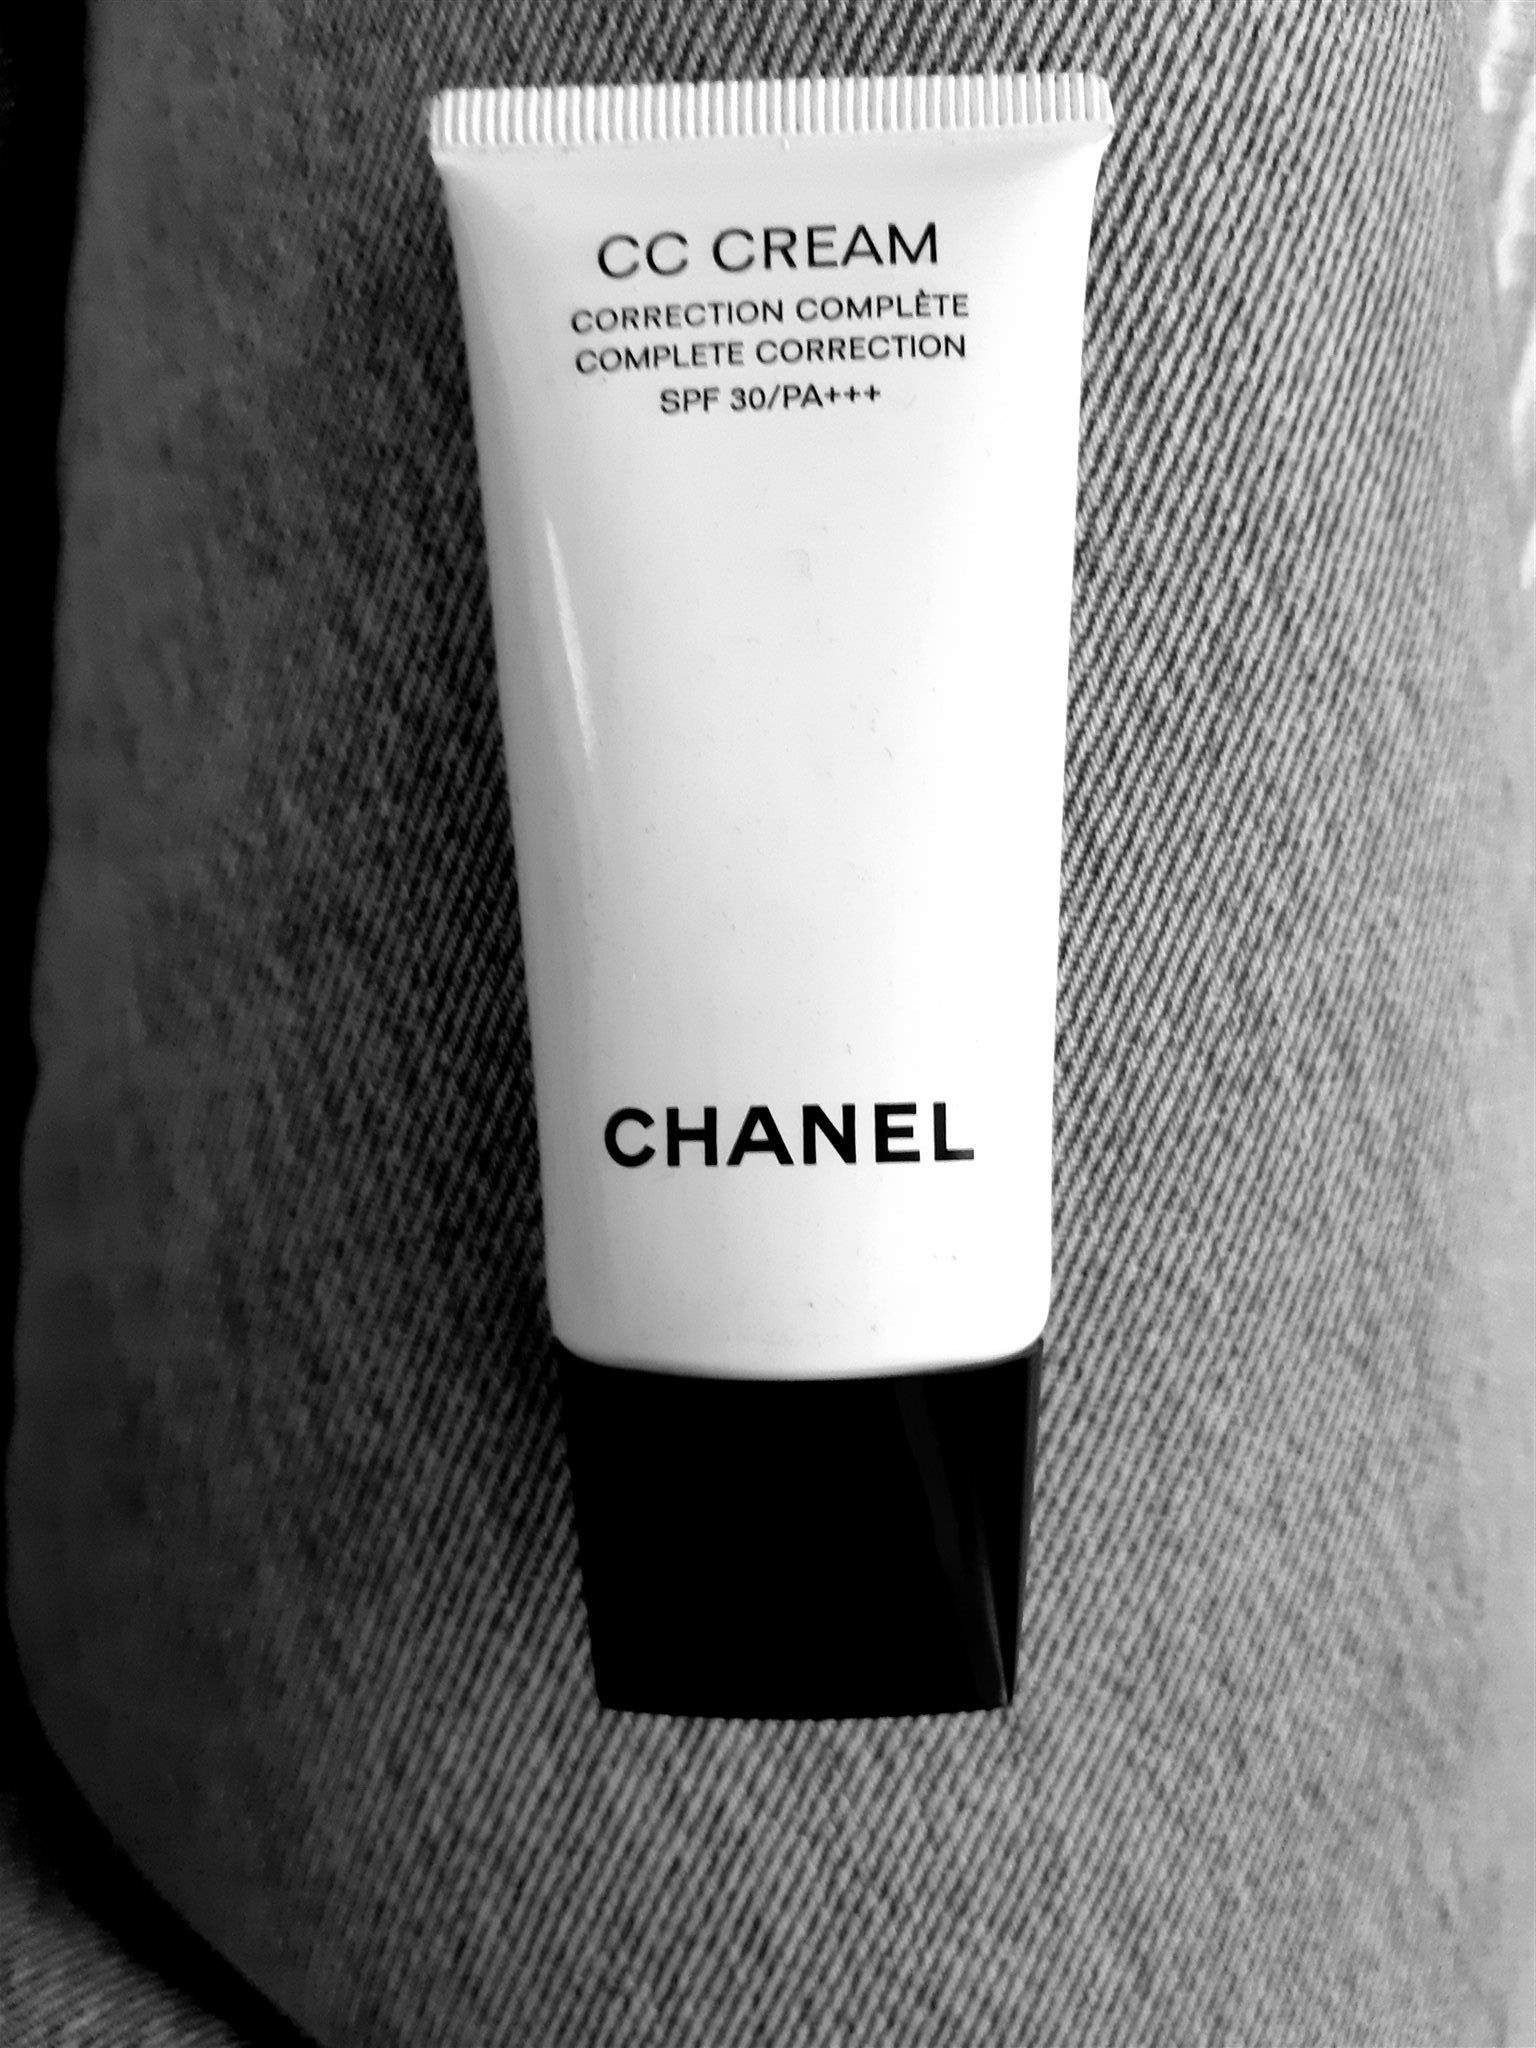 chanel cc cream sverige